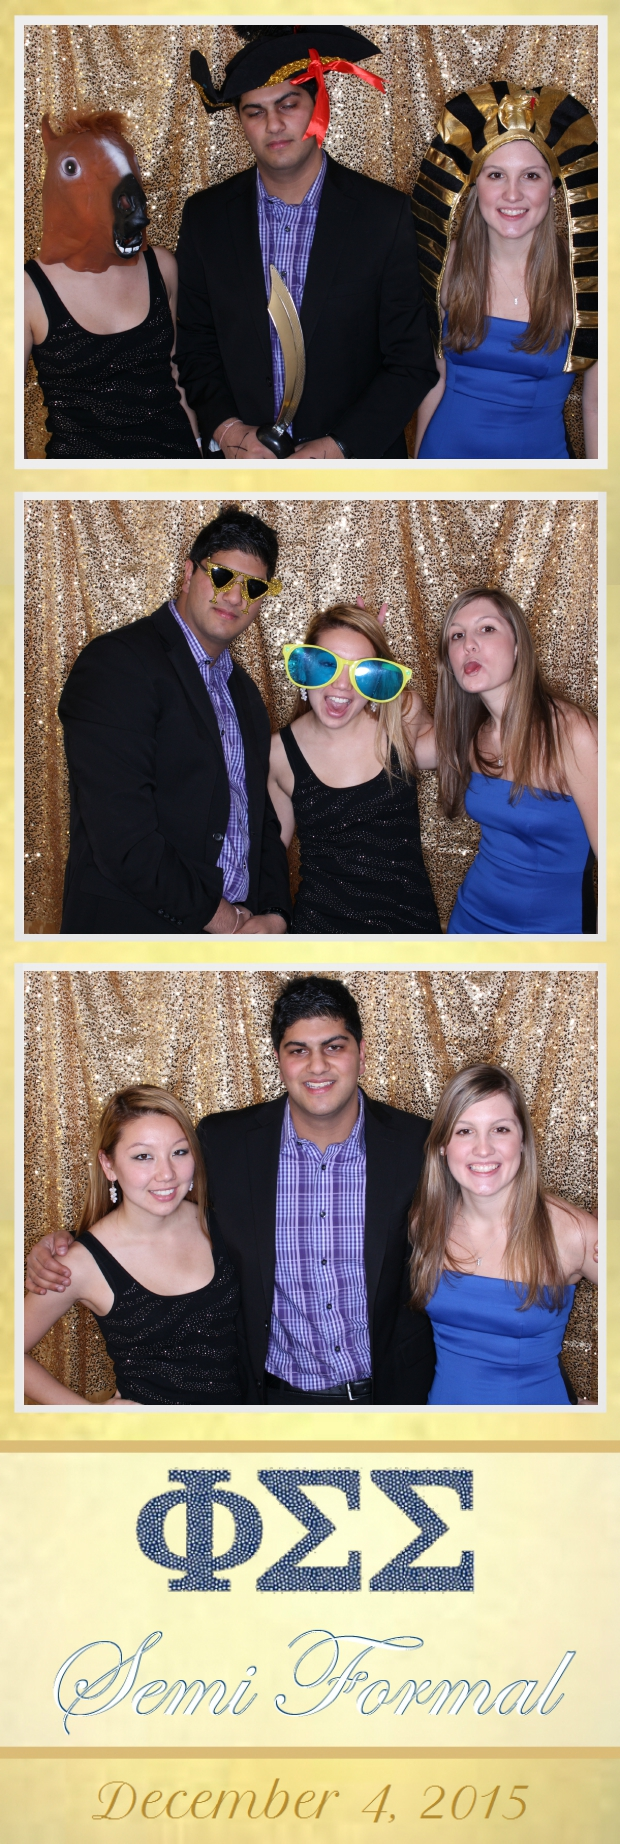 Guest House Events Photo Booth Phi Sigma Sigma Semi Formal (8).jpg